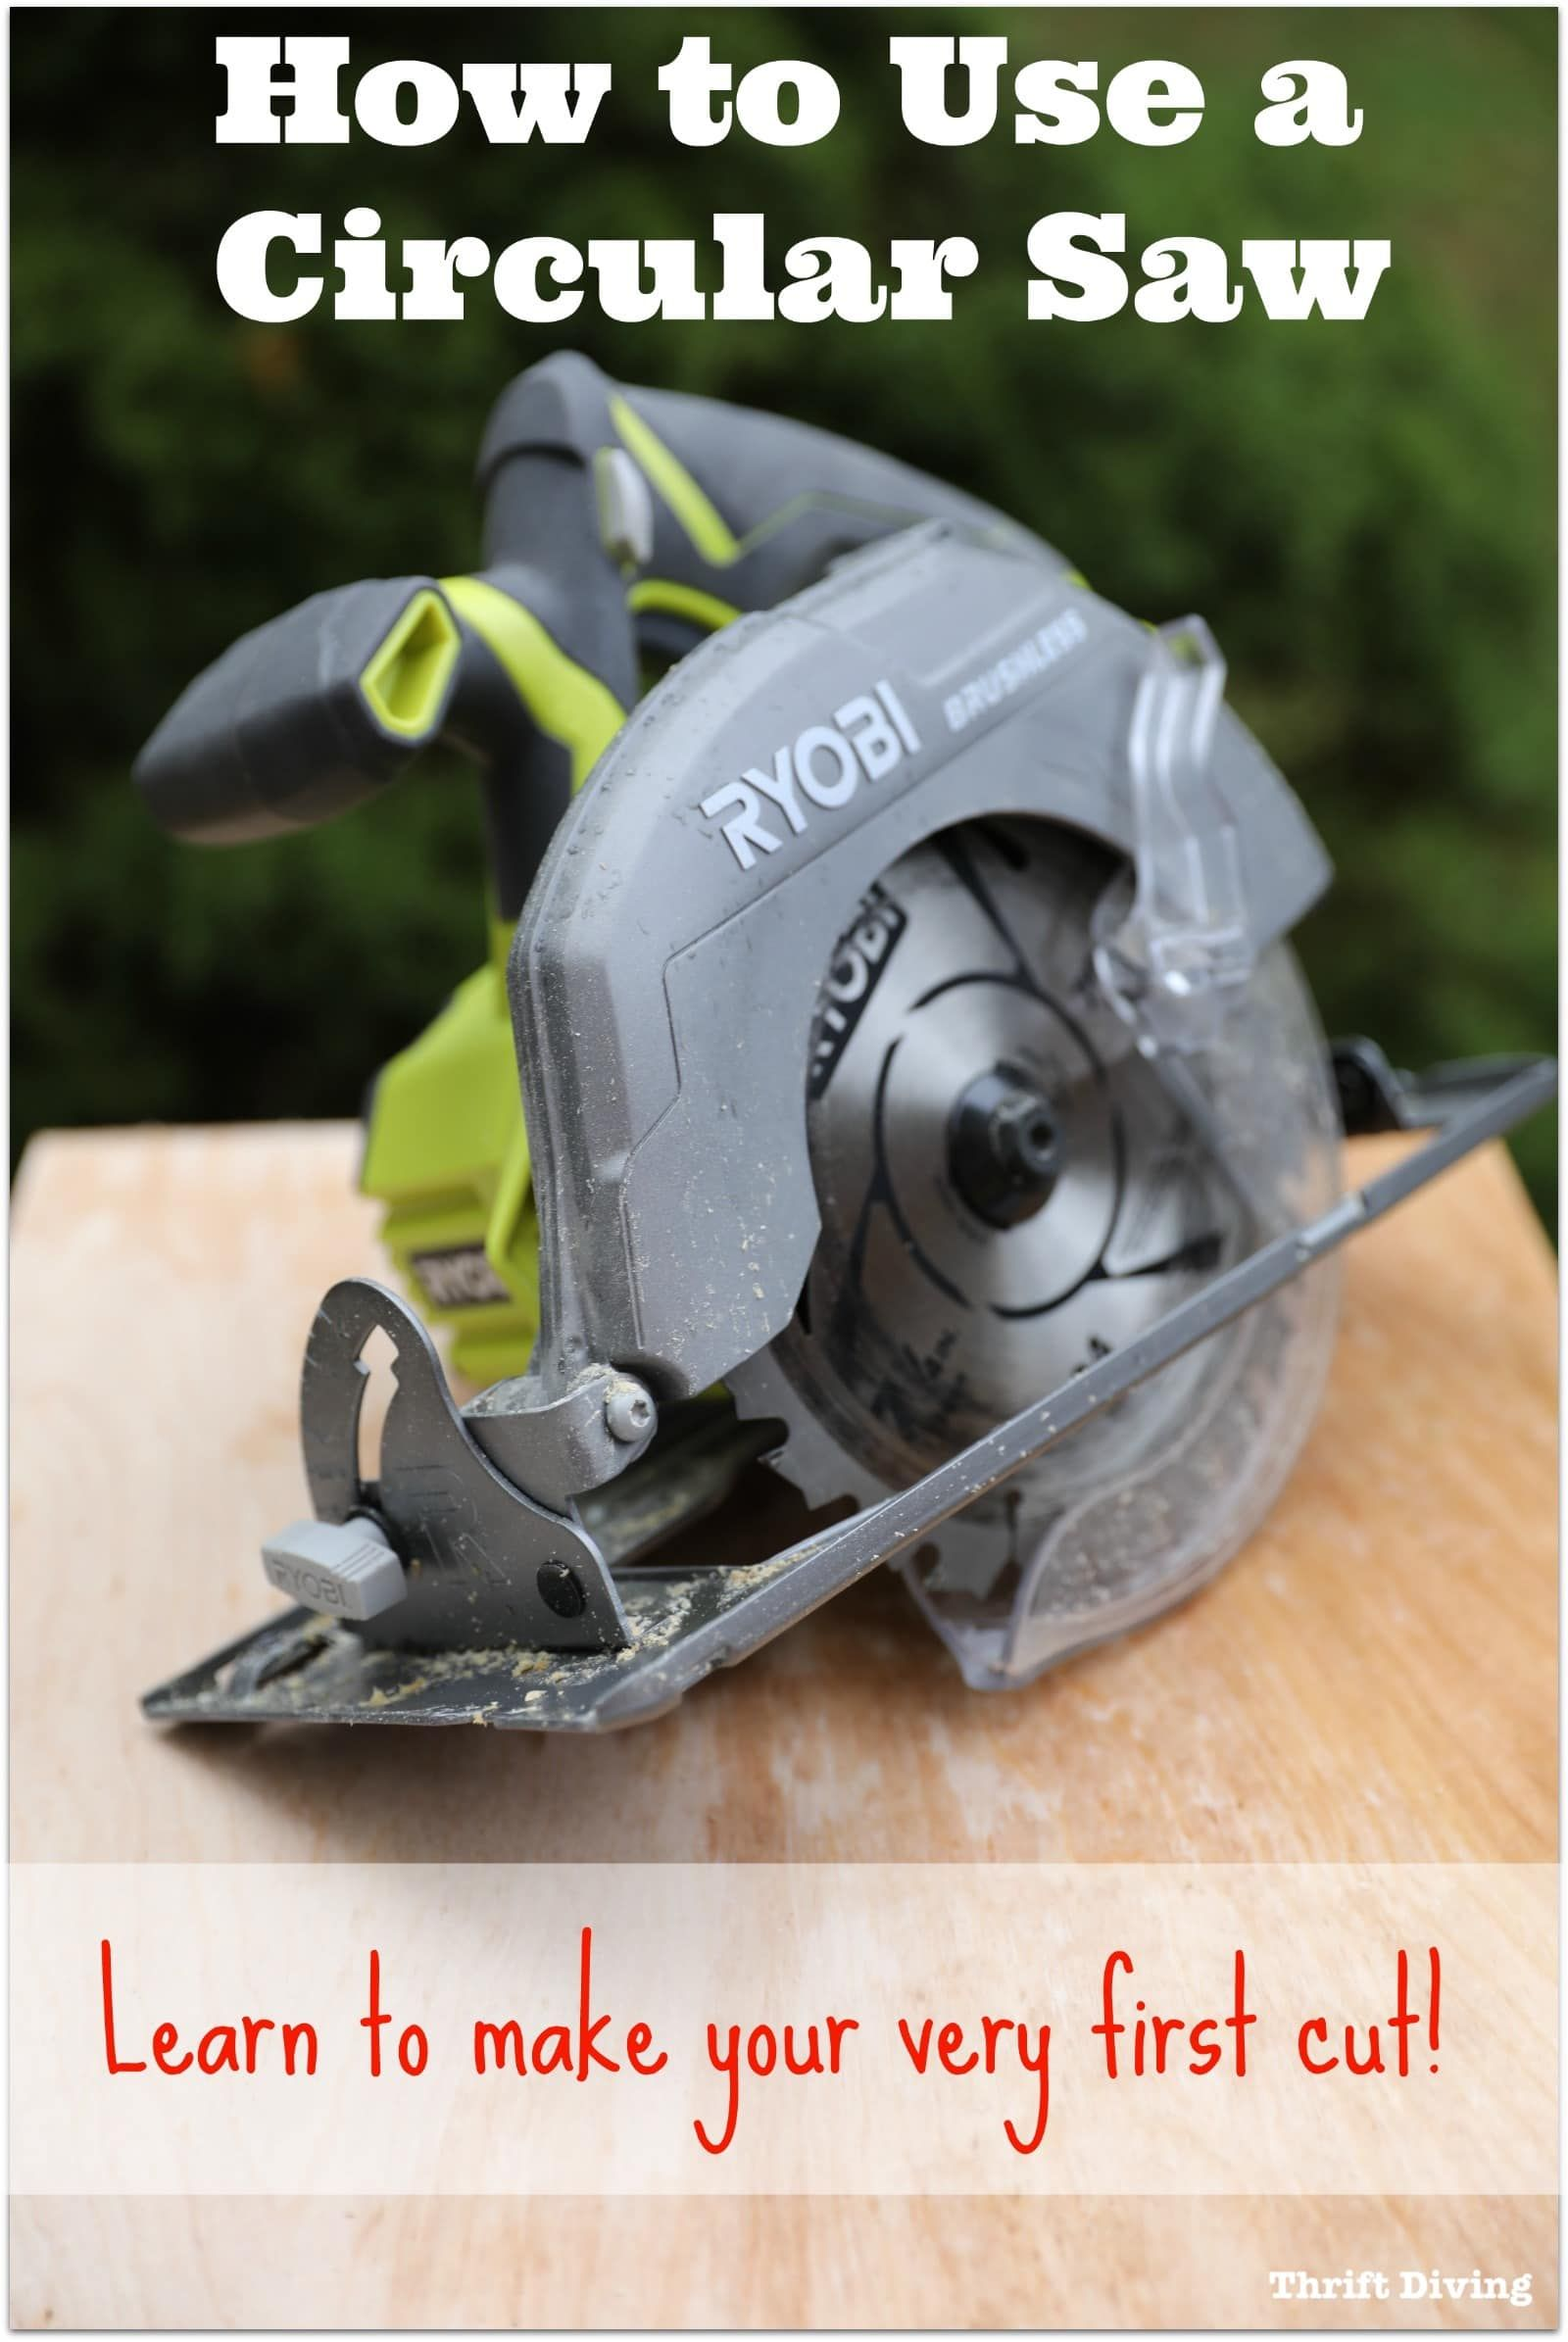 How To Use A Circular Saw Power Tools 101 Tutorial For Newbies Includes Video Circular Saw Best Circular Saw Ryobi Circular Saw